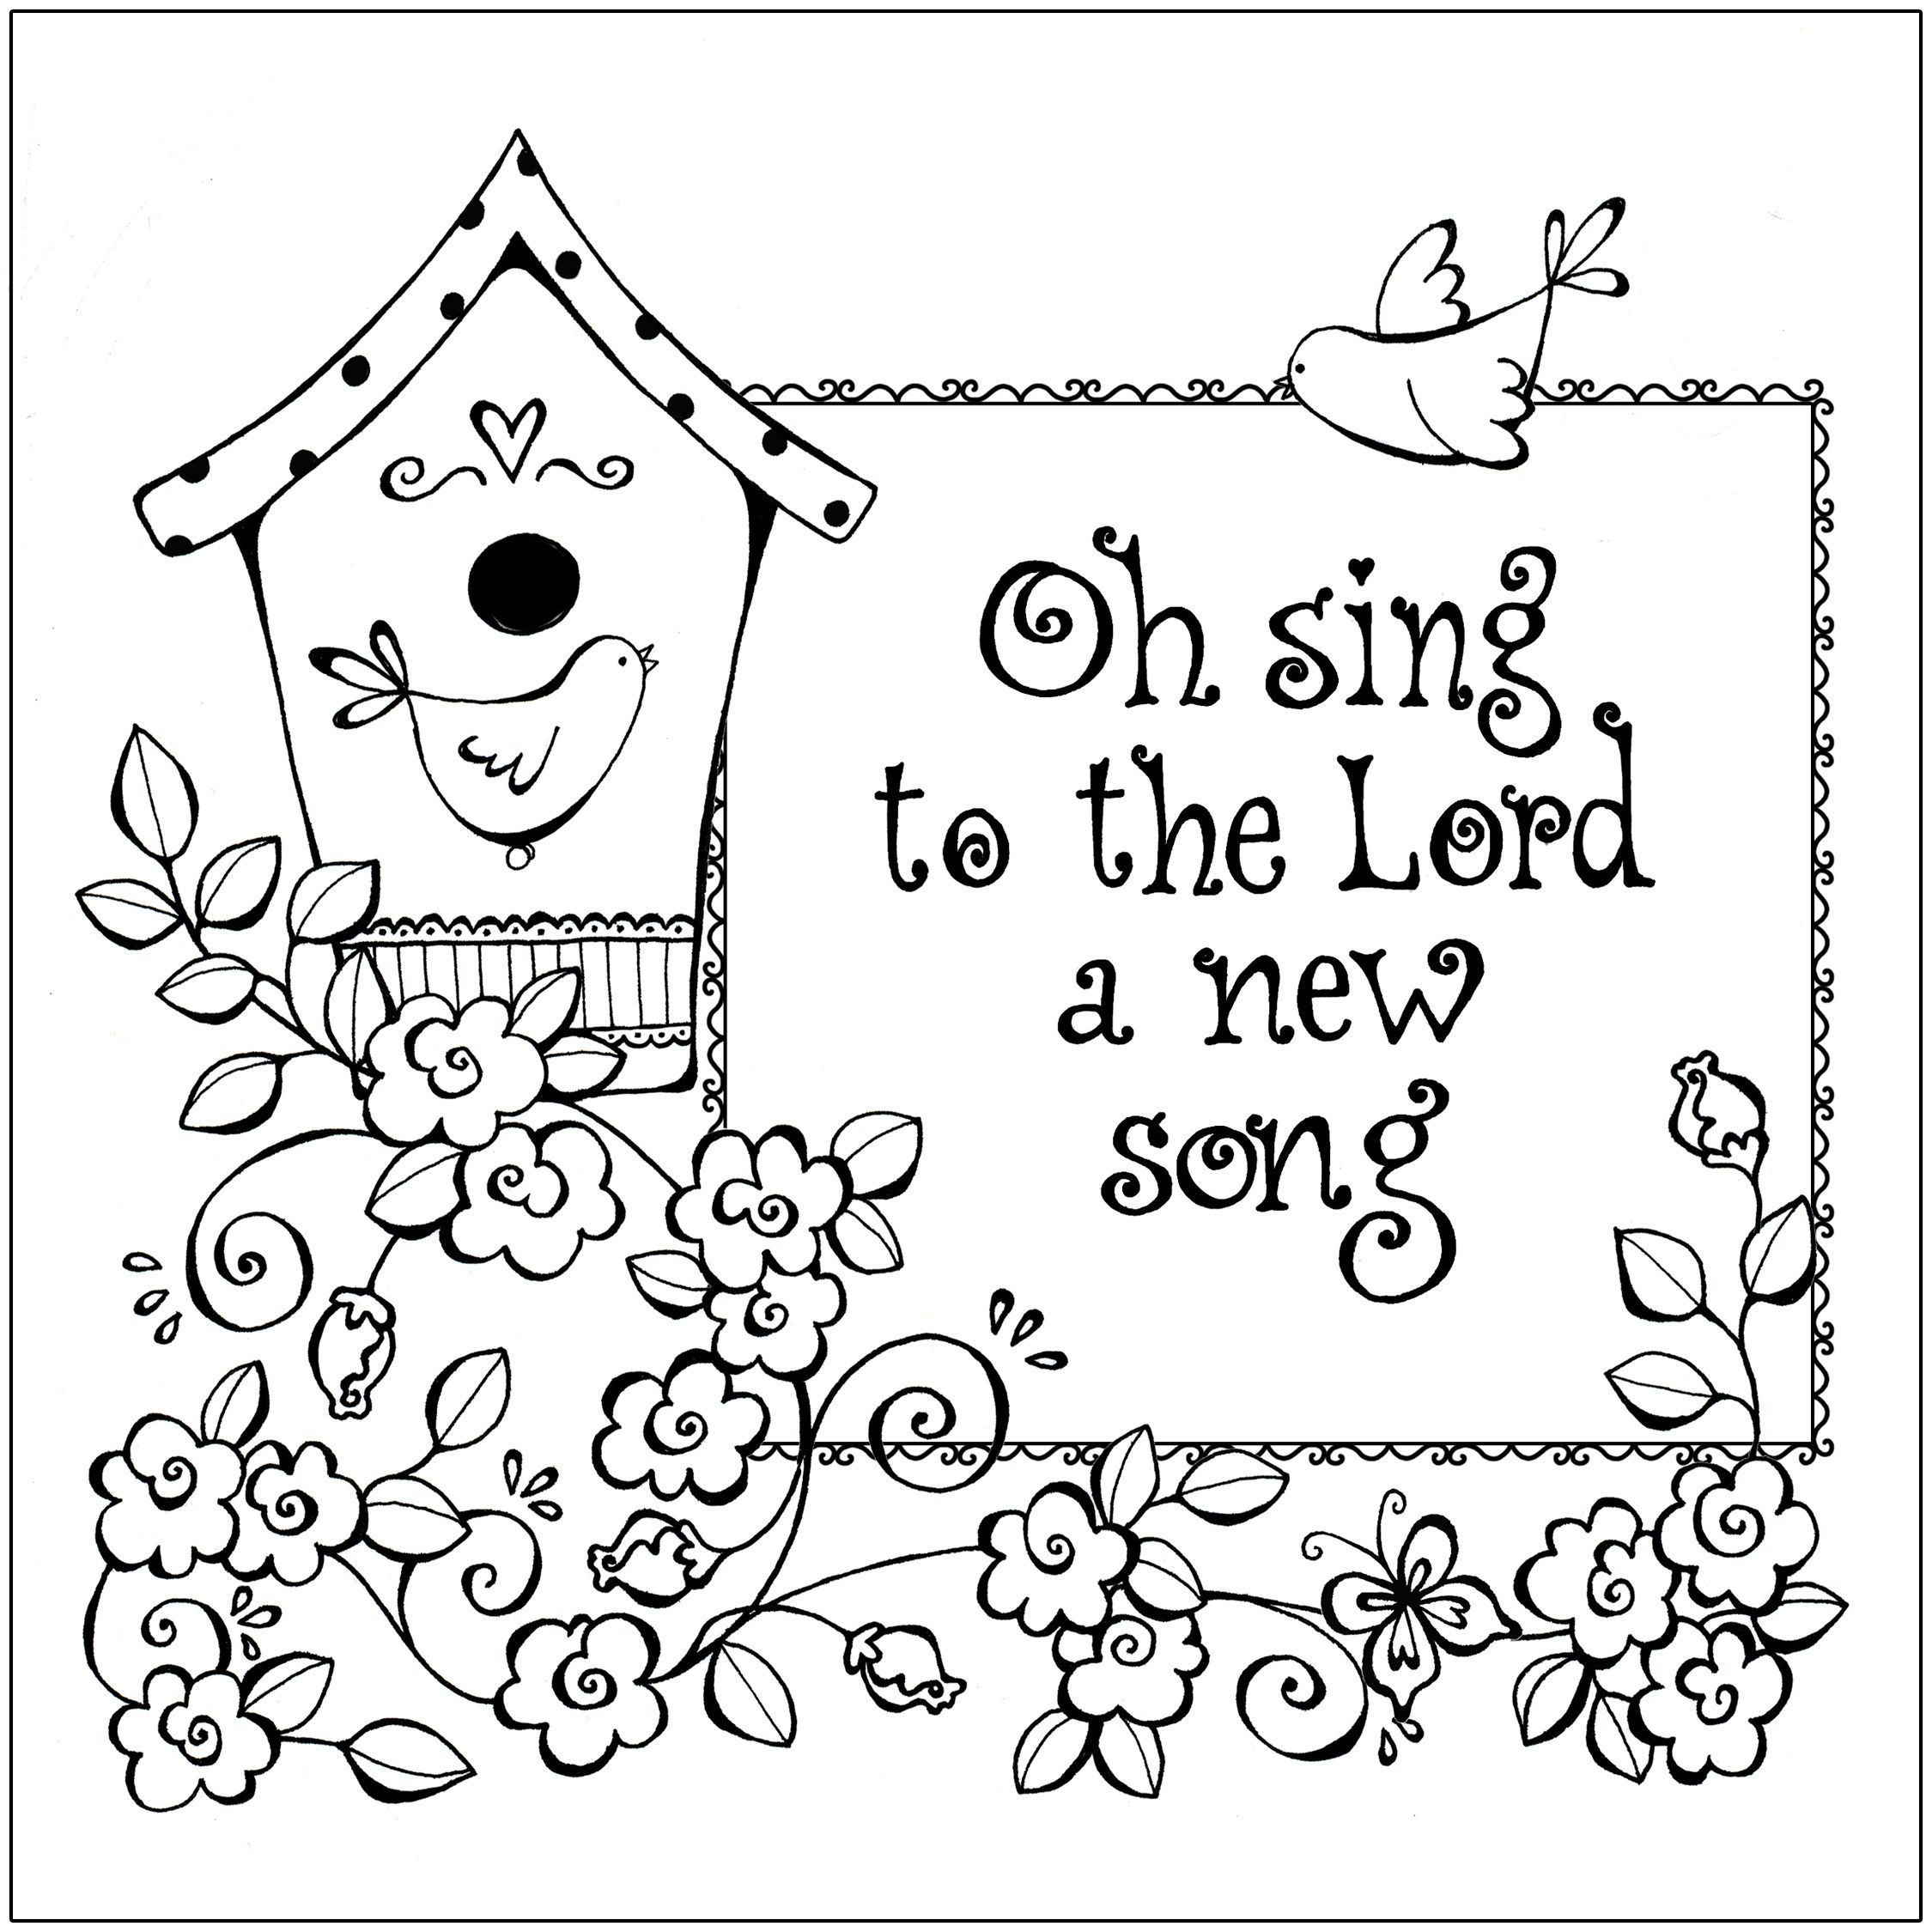 Printable coloring pages religious items - Summer Coloring Pages For Kids And Please Feel Free To Share It With Your Sunday